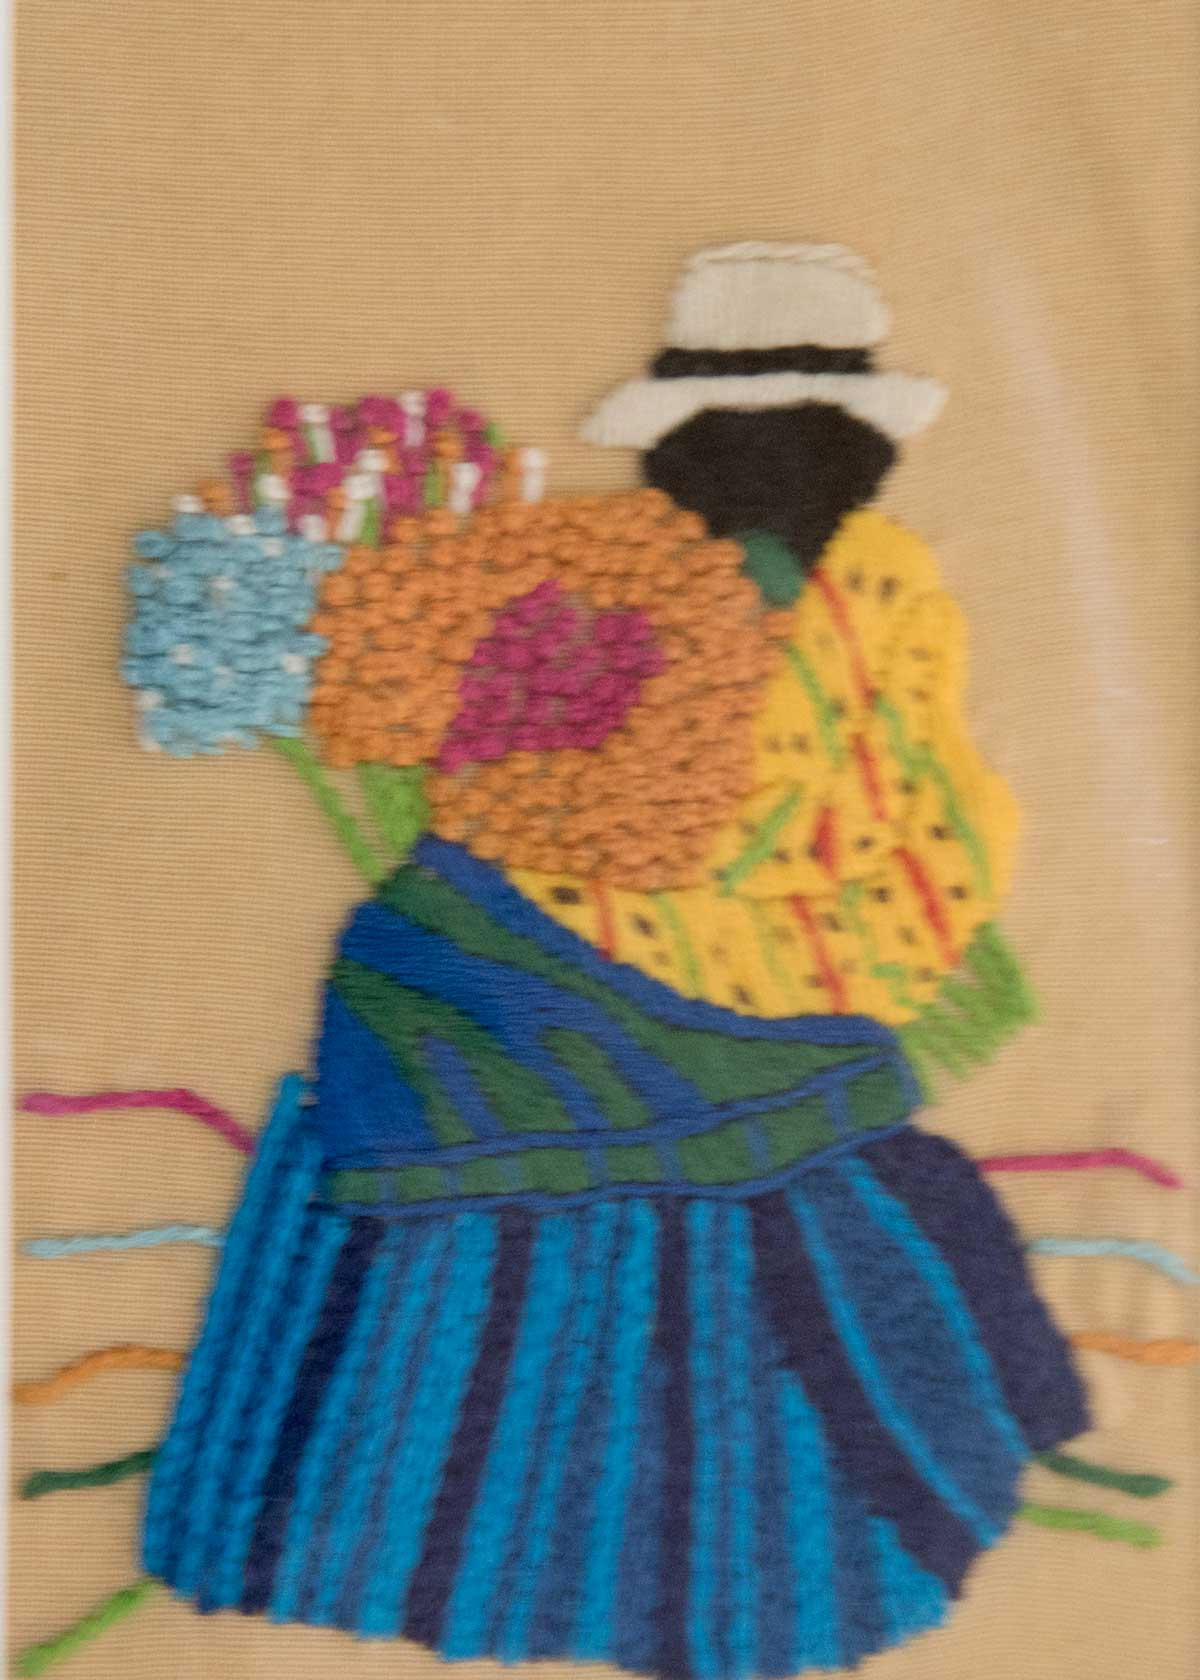 Chola Cuencana; Exhibit of Cuenca Fiber Artists | ©Angela Drake